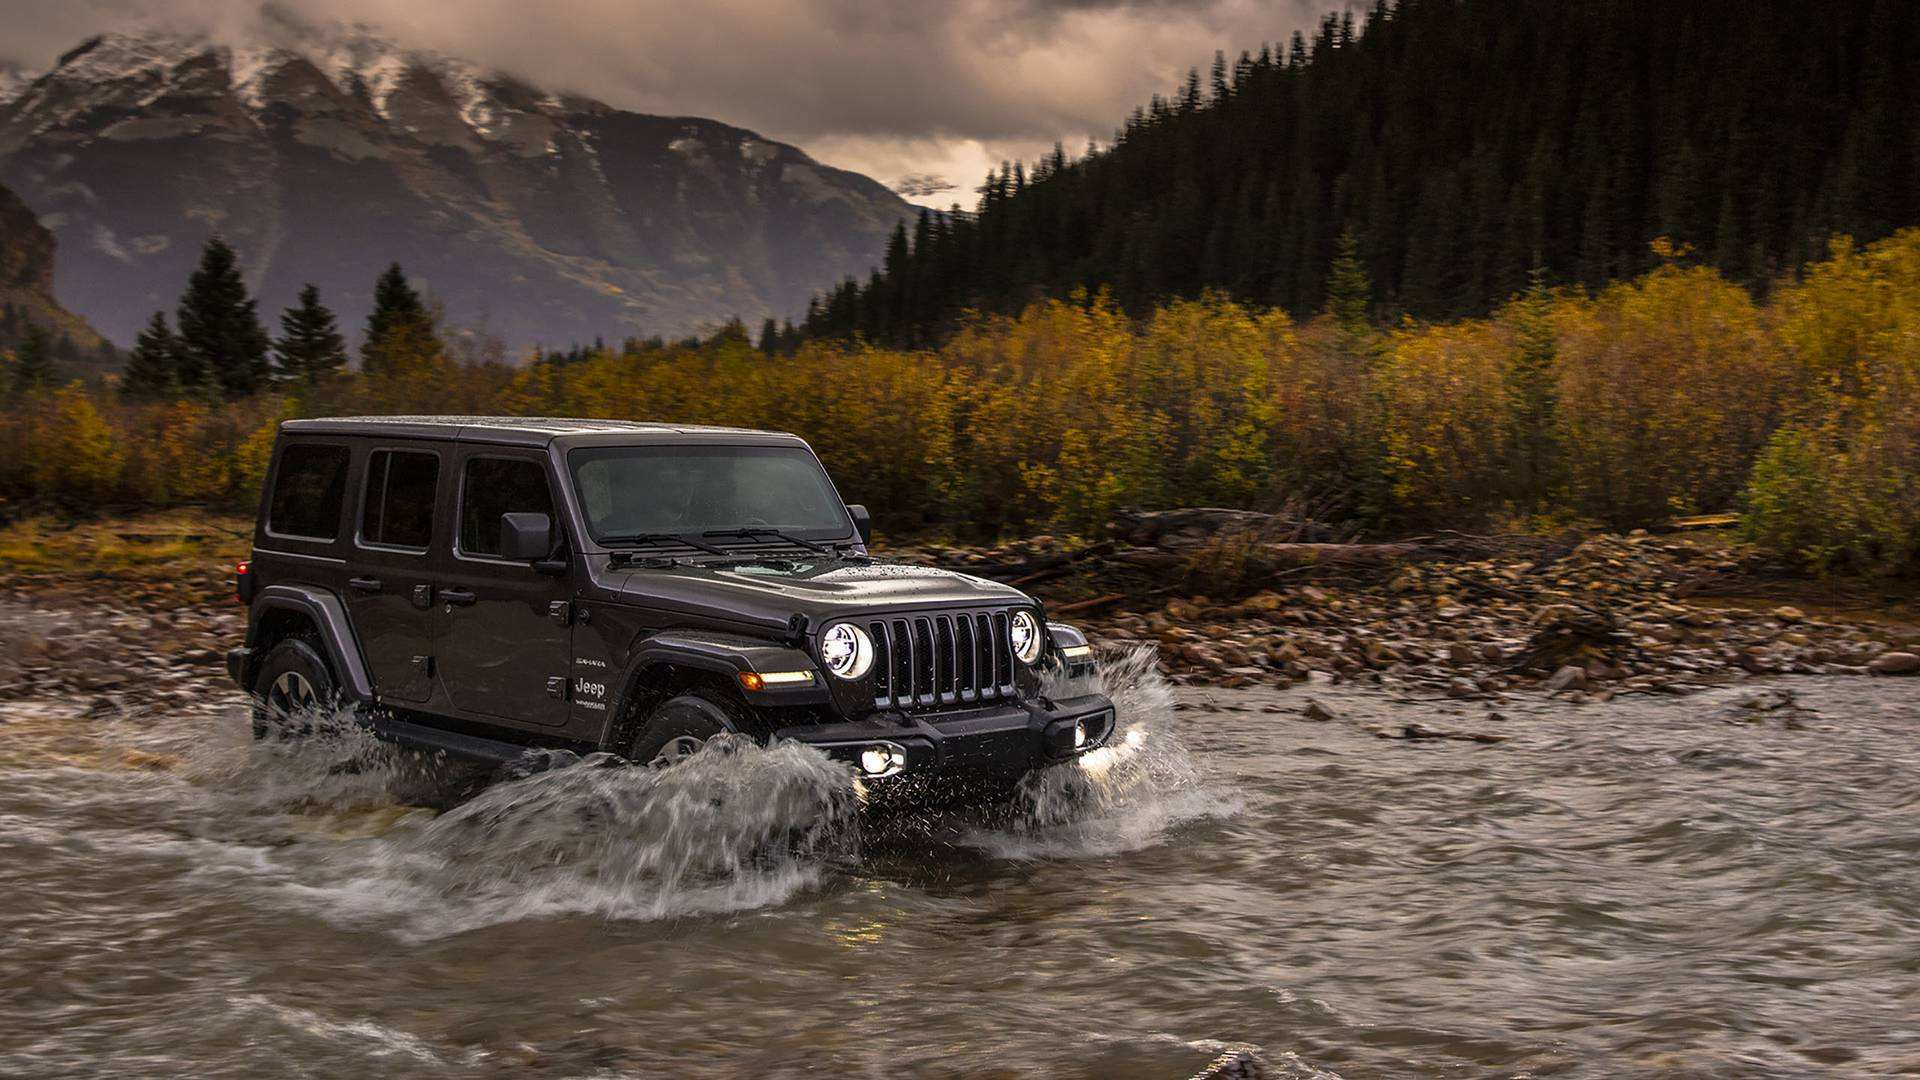 49 New Best Jeep 2019 Orders Price And Release Date Performance by Best Jeep 2019 Orders Price And Release Date